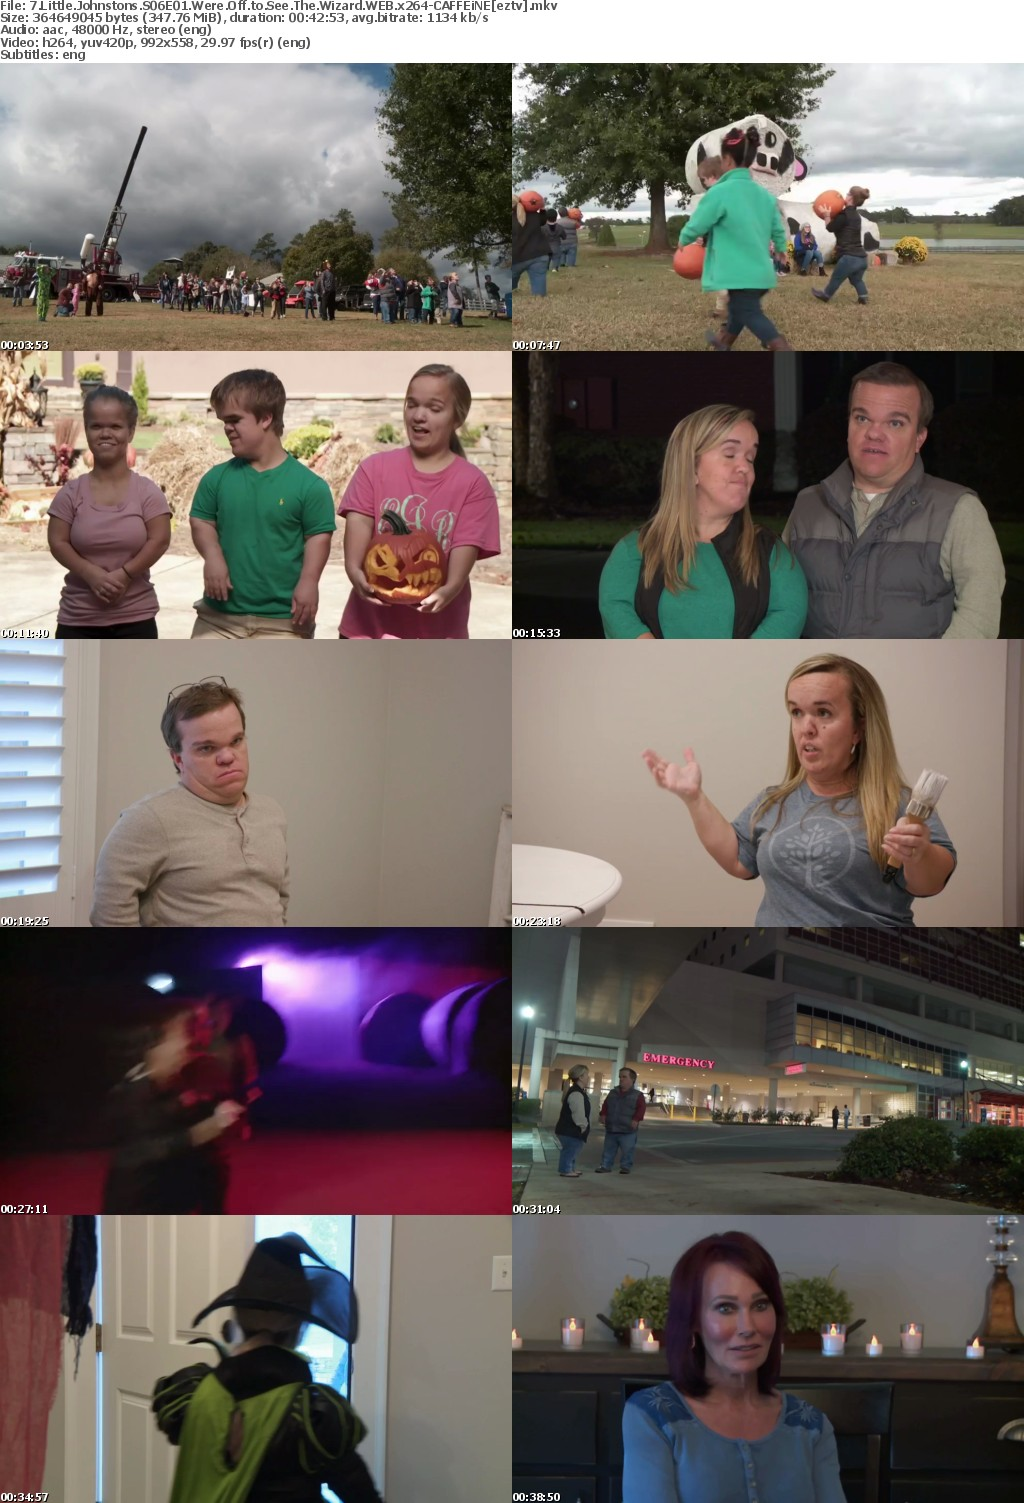 7 Little Johnstons S06E01 Were Off to See The Wizard WEB x264-CAFFEiNE